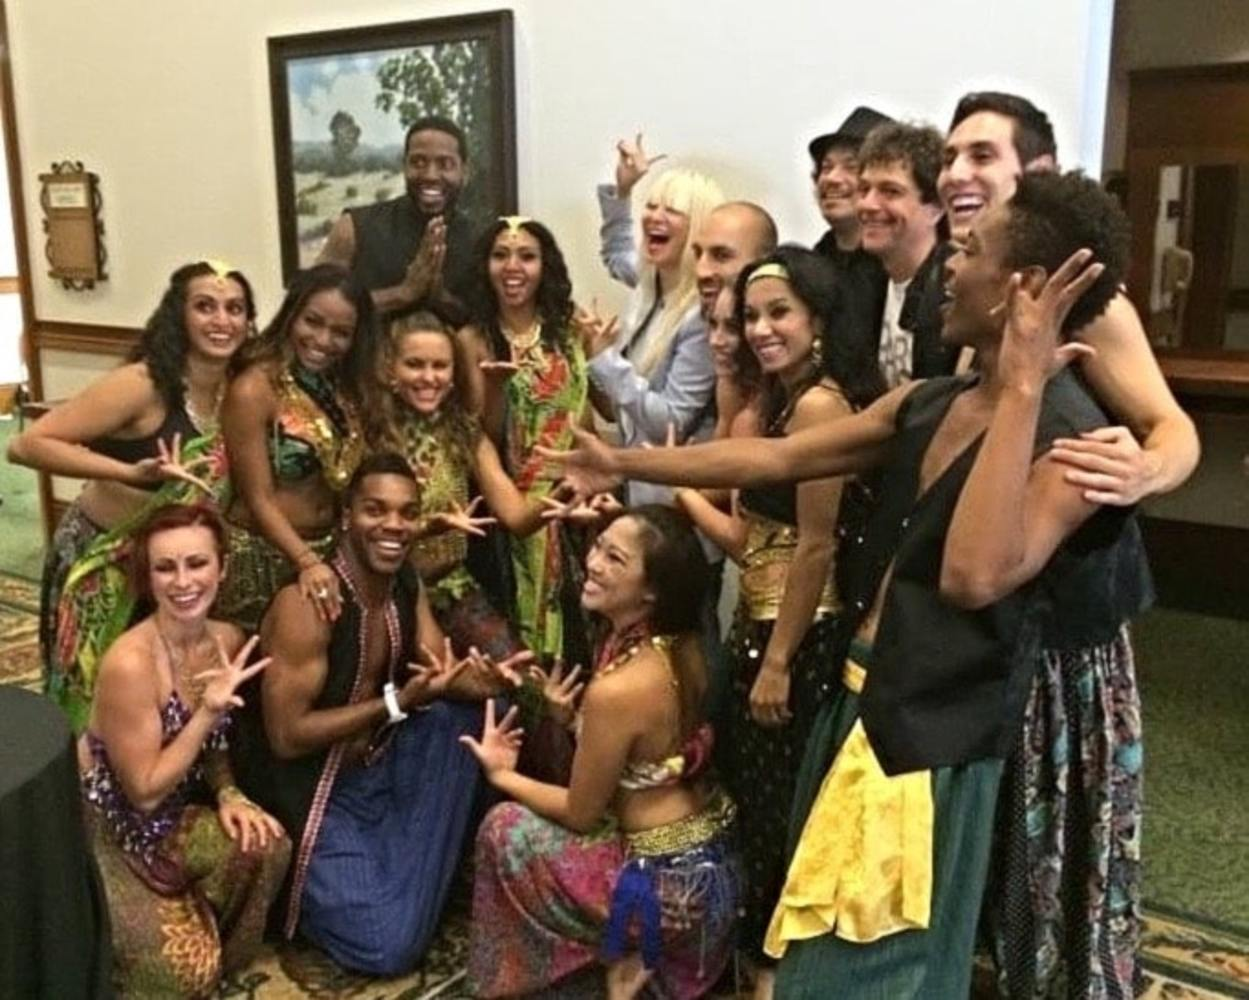 Singer/songwriter Sia (center) with BollyDoll creators Amrita Sen and Anthony Marinelli and cast, after their performances at Deepak Chopra's Sages & Scientists Symposium, Carlsbad, CA (2014)